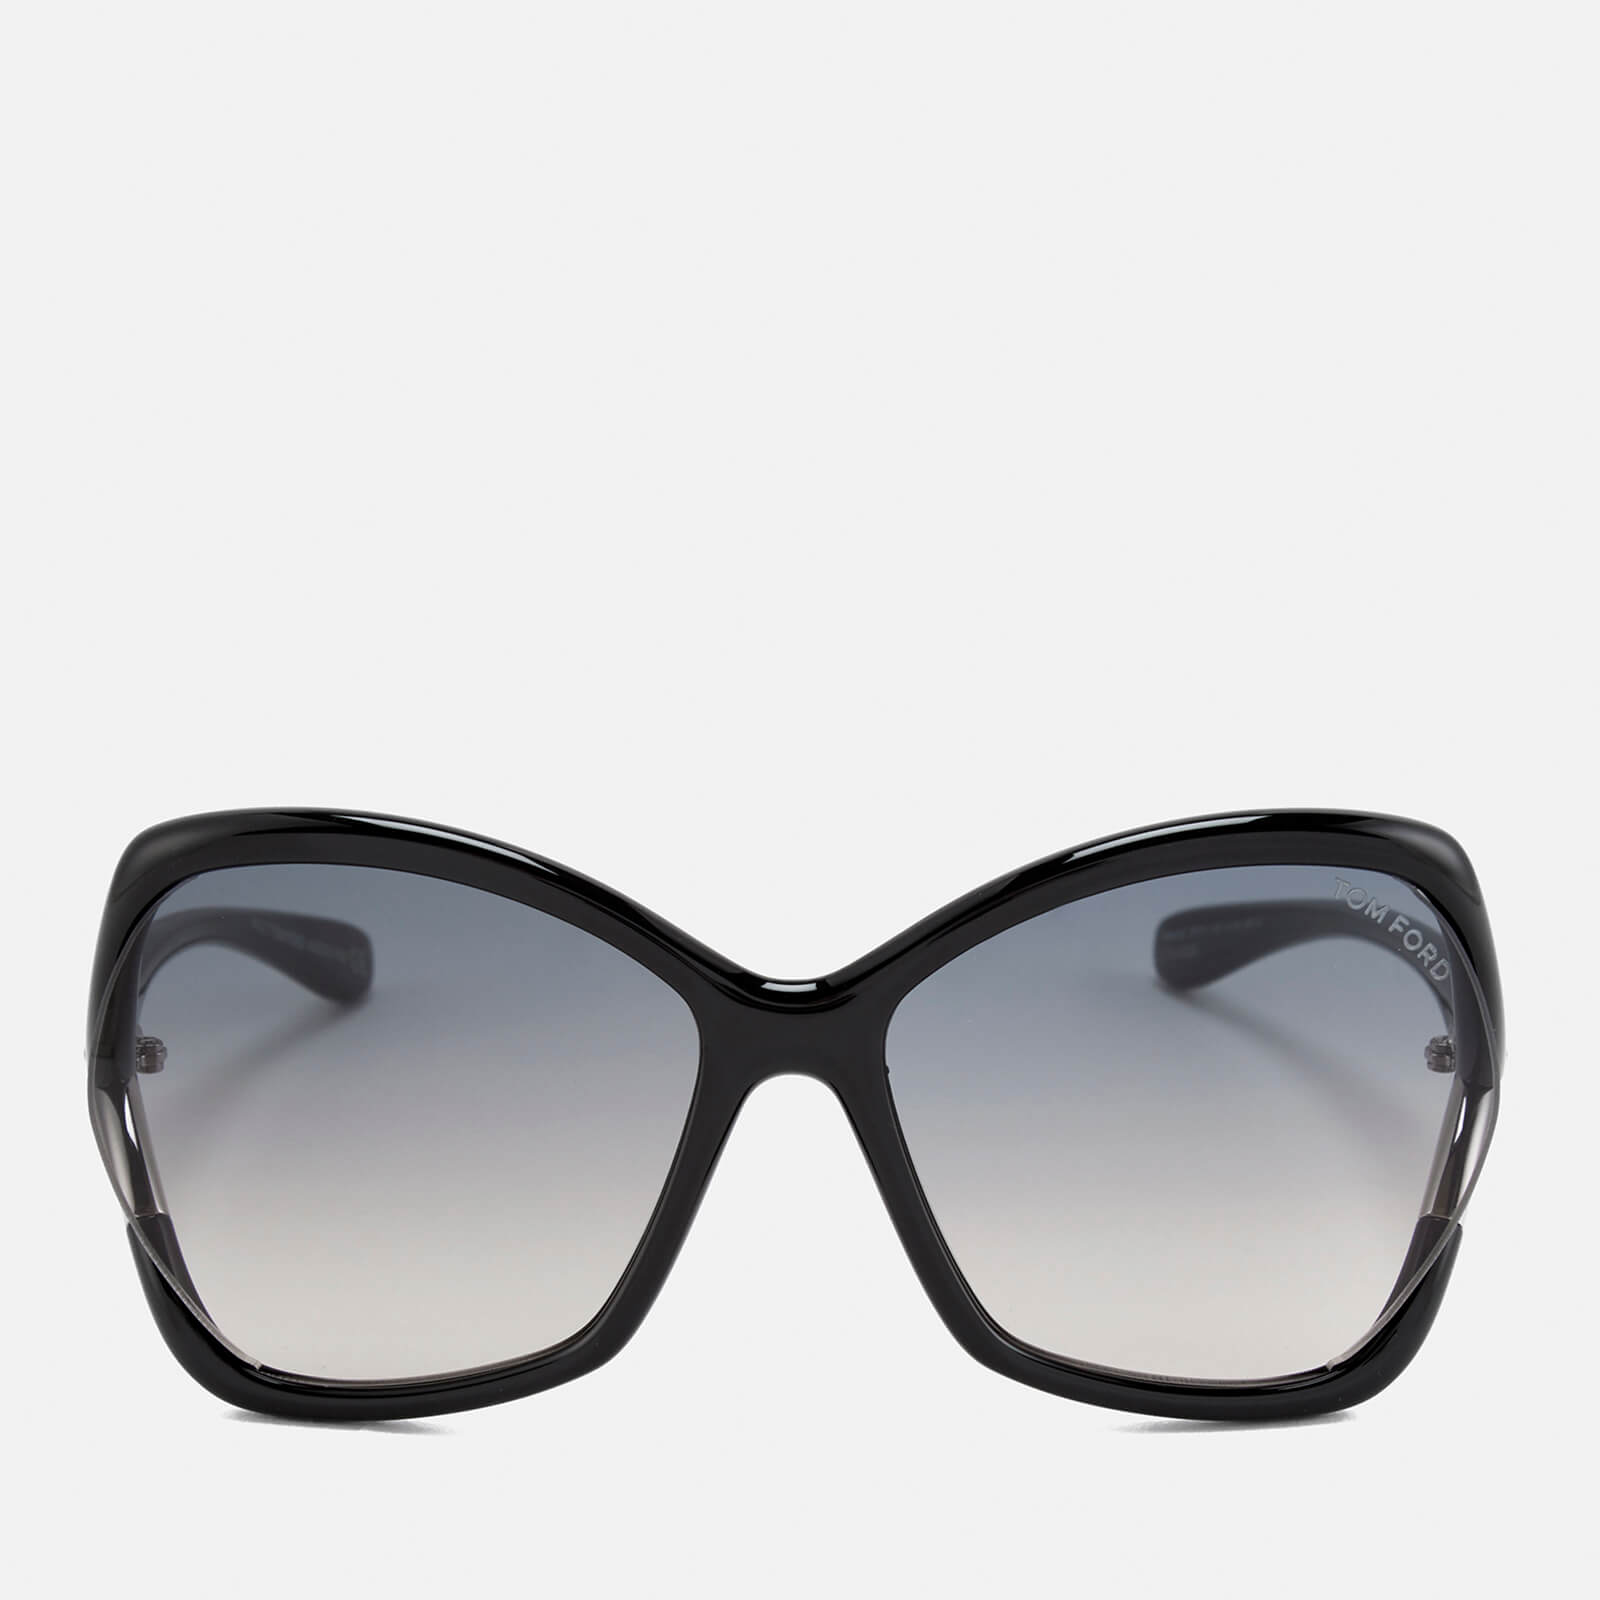 28ad556561ae6 Tom Ford Women s Astrid Oversized Sunglasses - Black Gradient Smoke Womens  Accessories